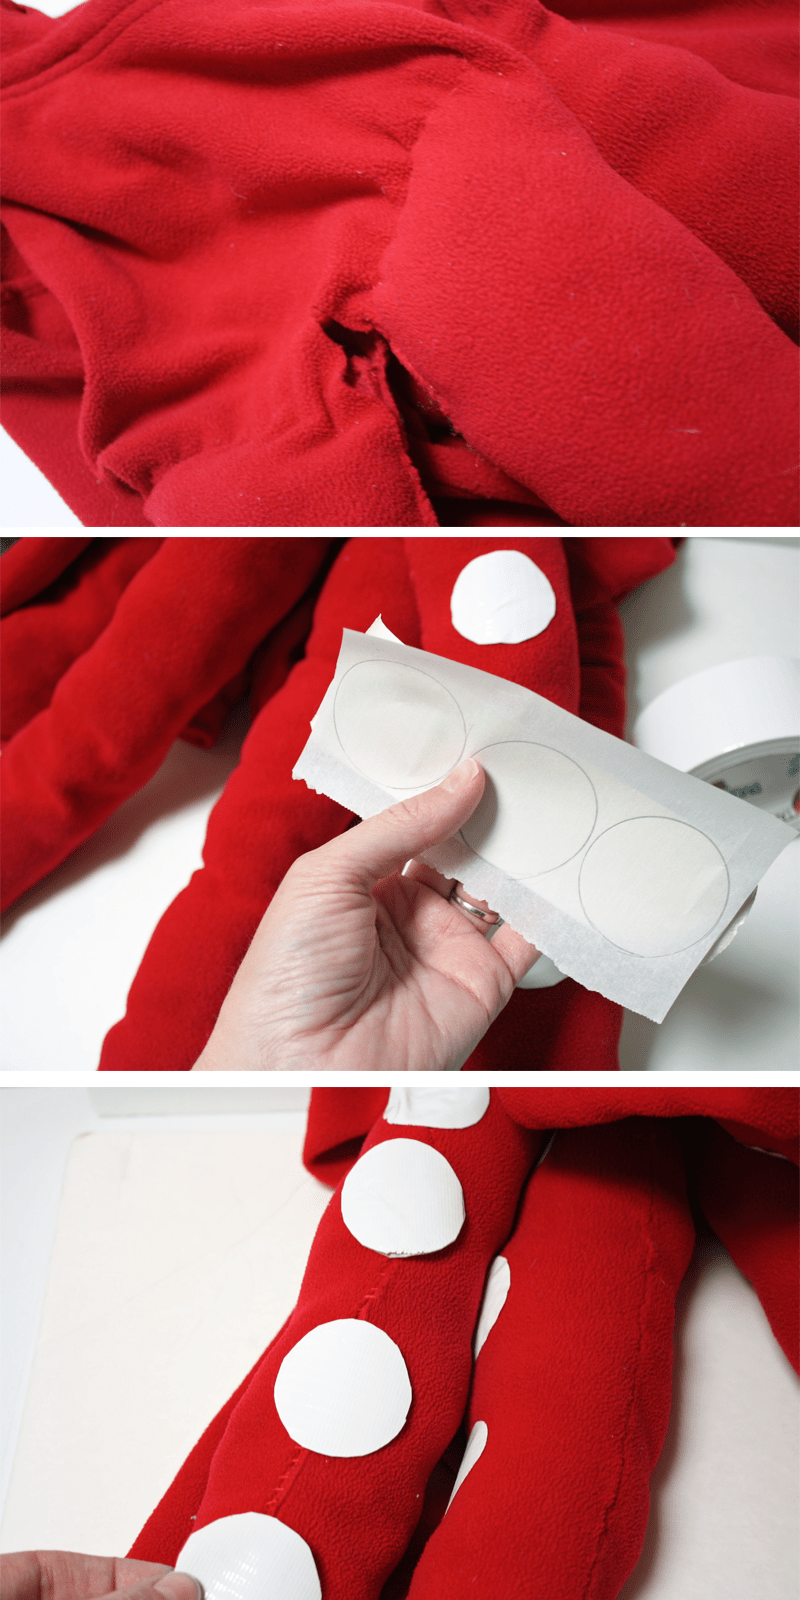 Adding suction cups to octopus costume